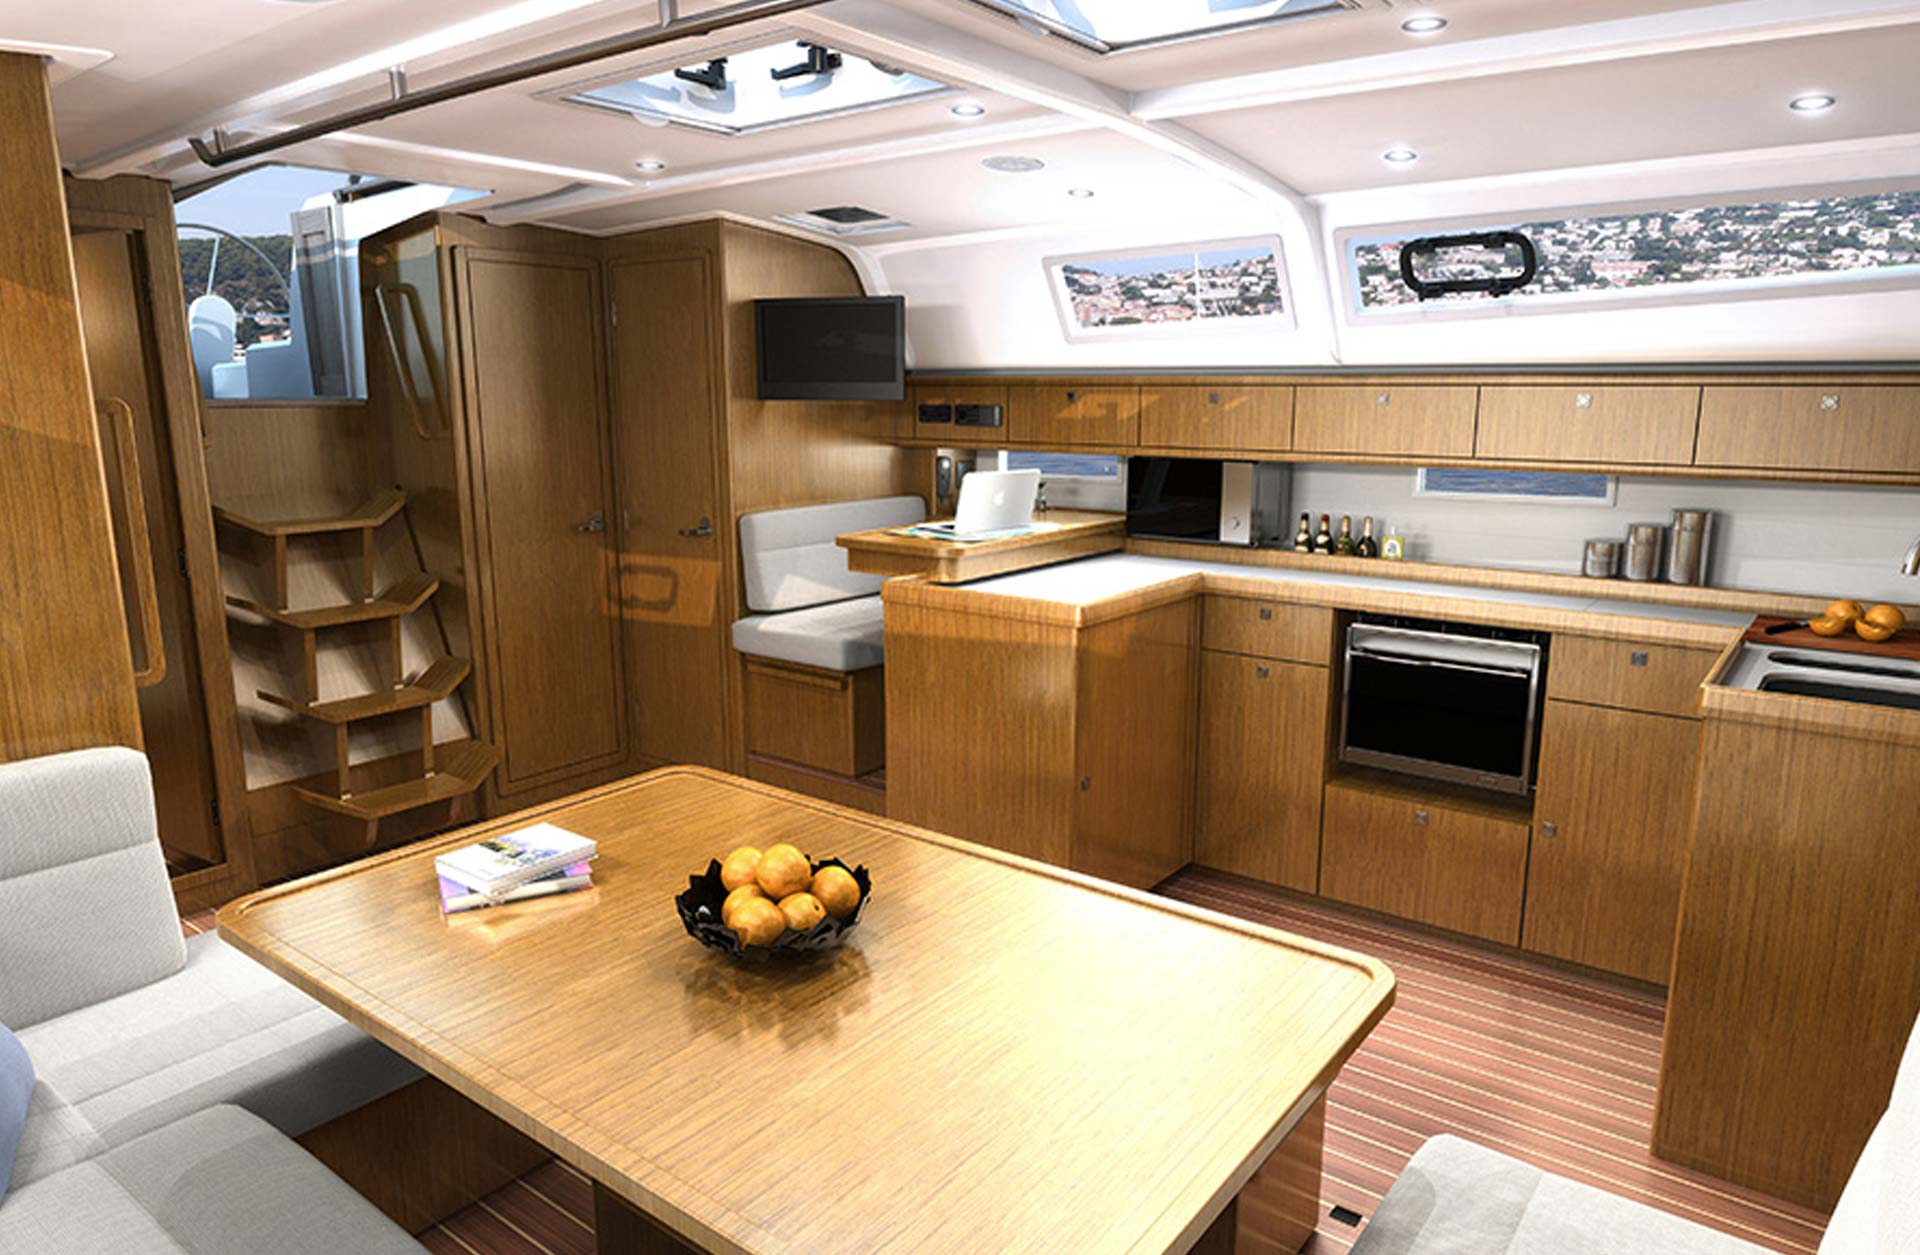 Bavaria Cruiser 51 Boats - Interior